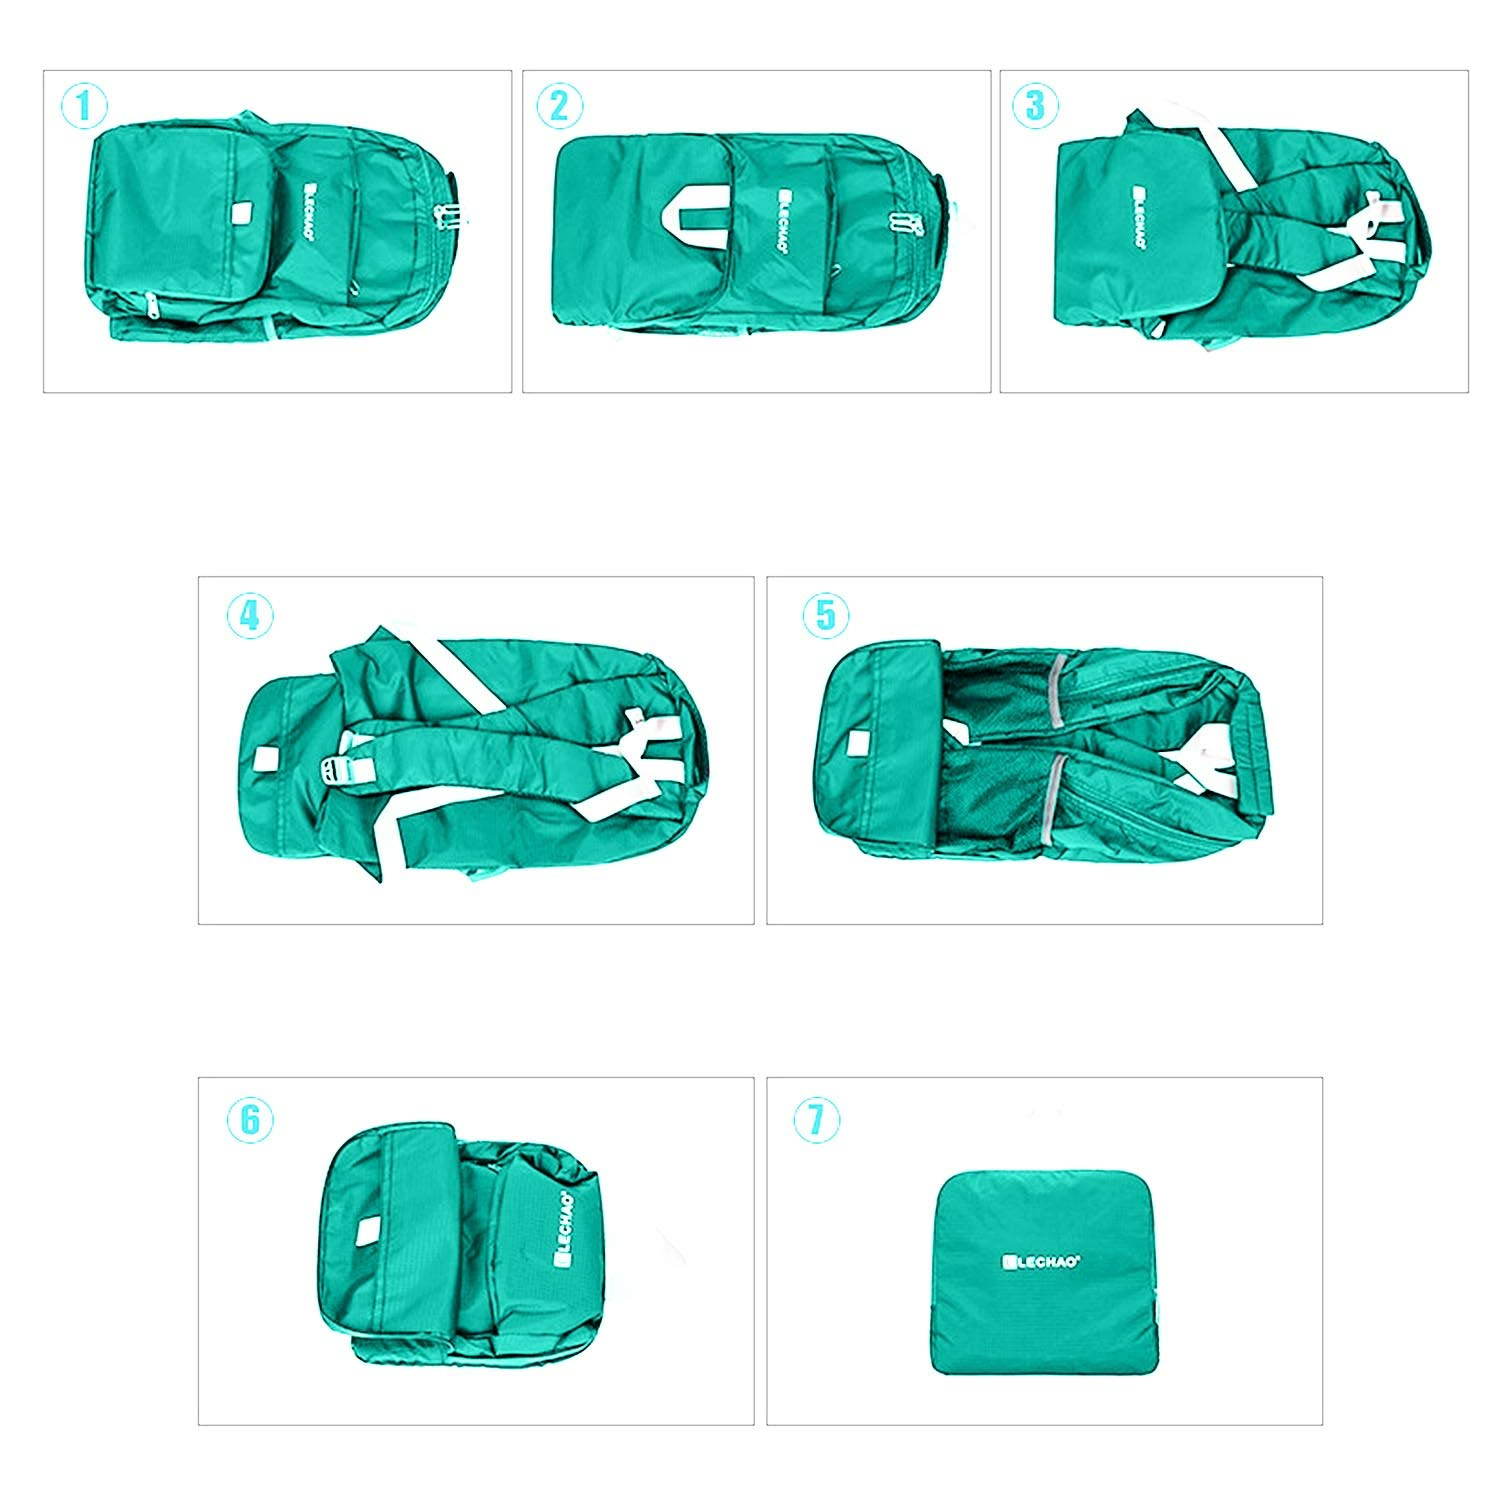 Packable Backpack Foldable Daypack Lightweight Carry on Camping Hiking Biking Travel